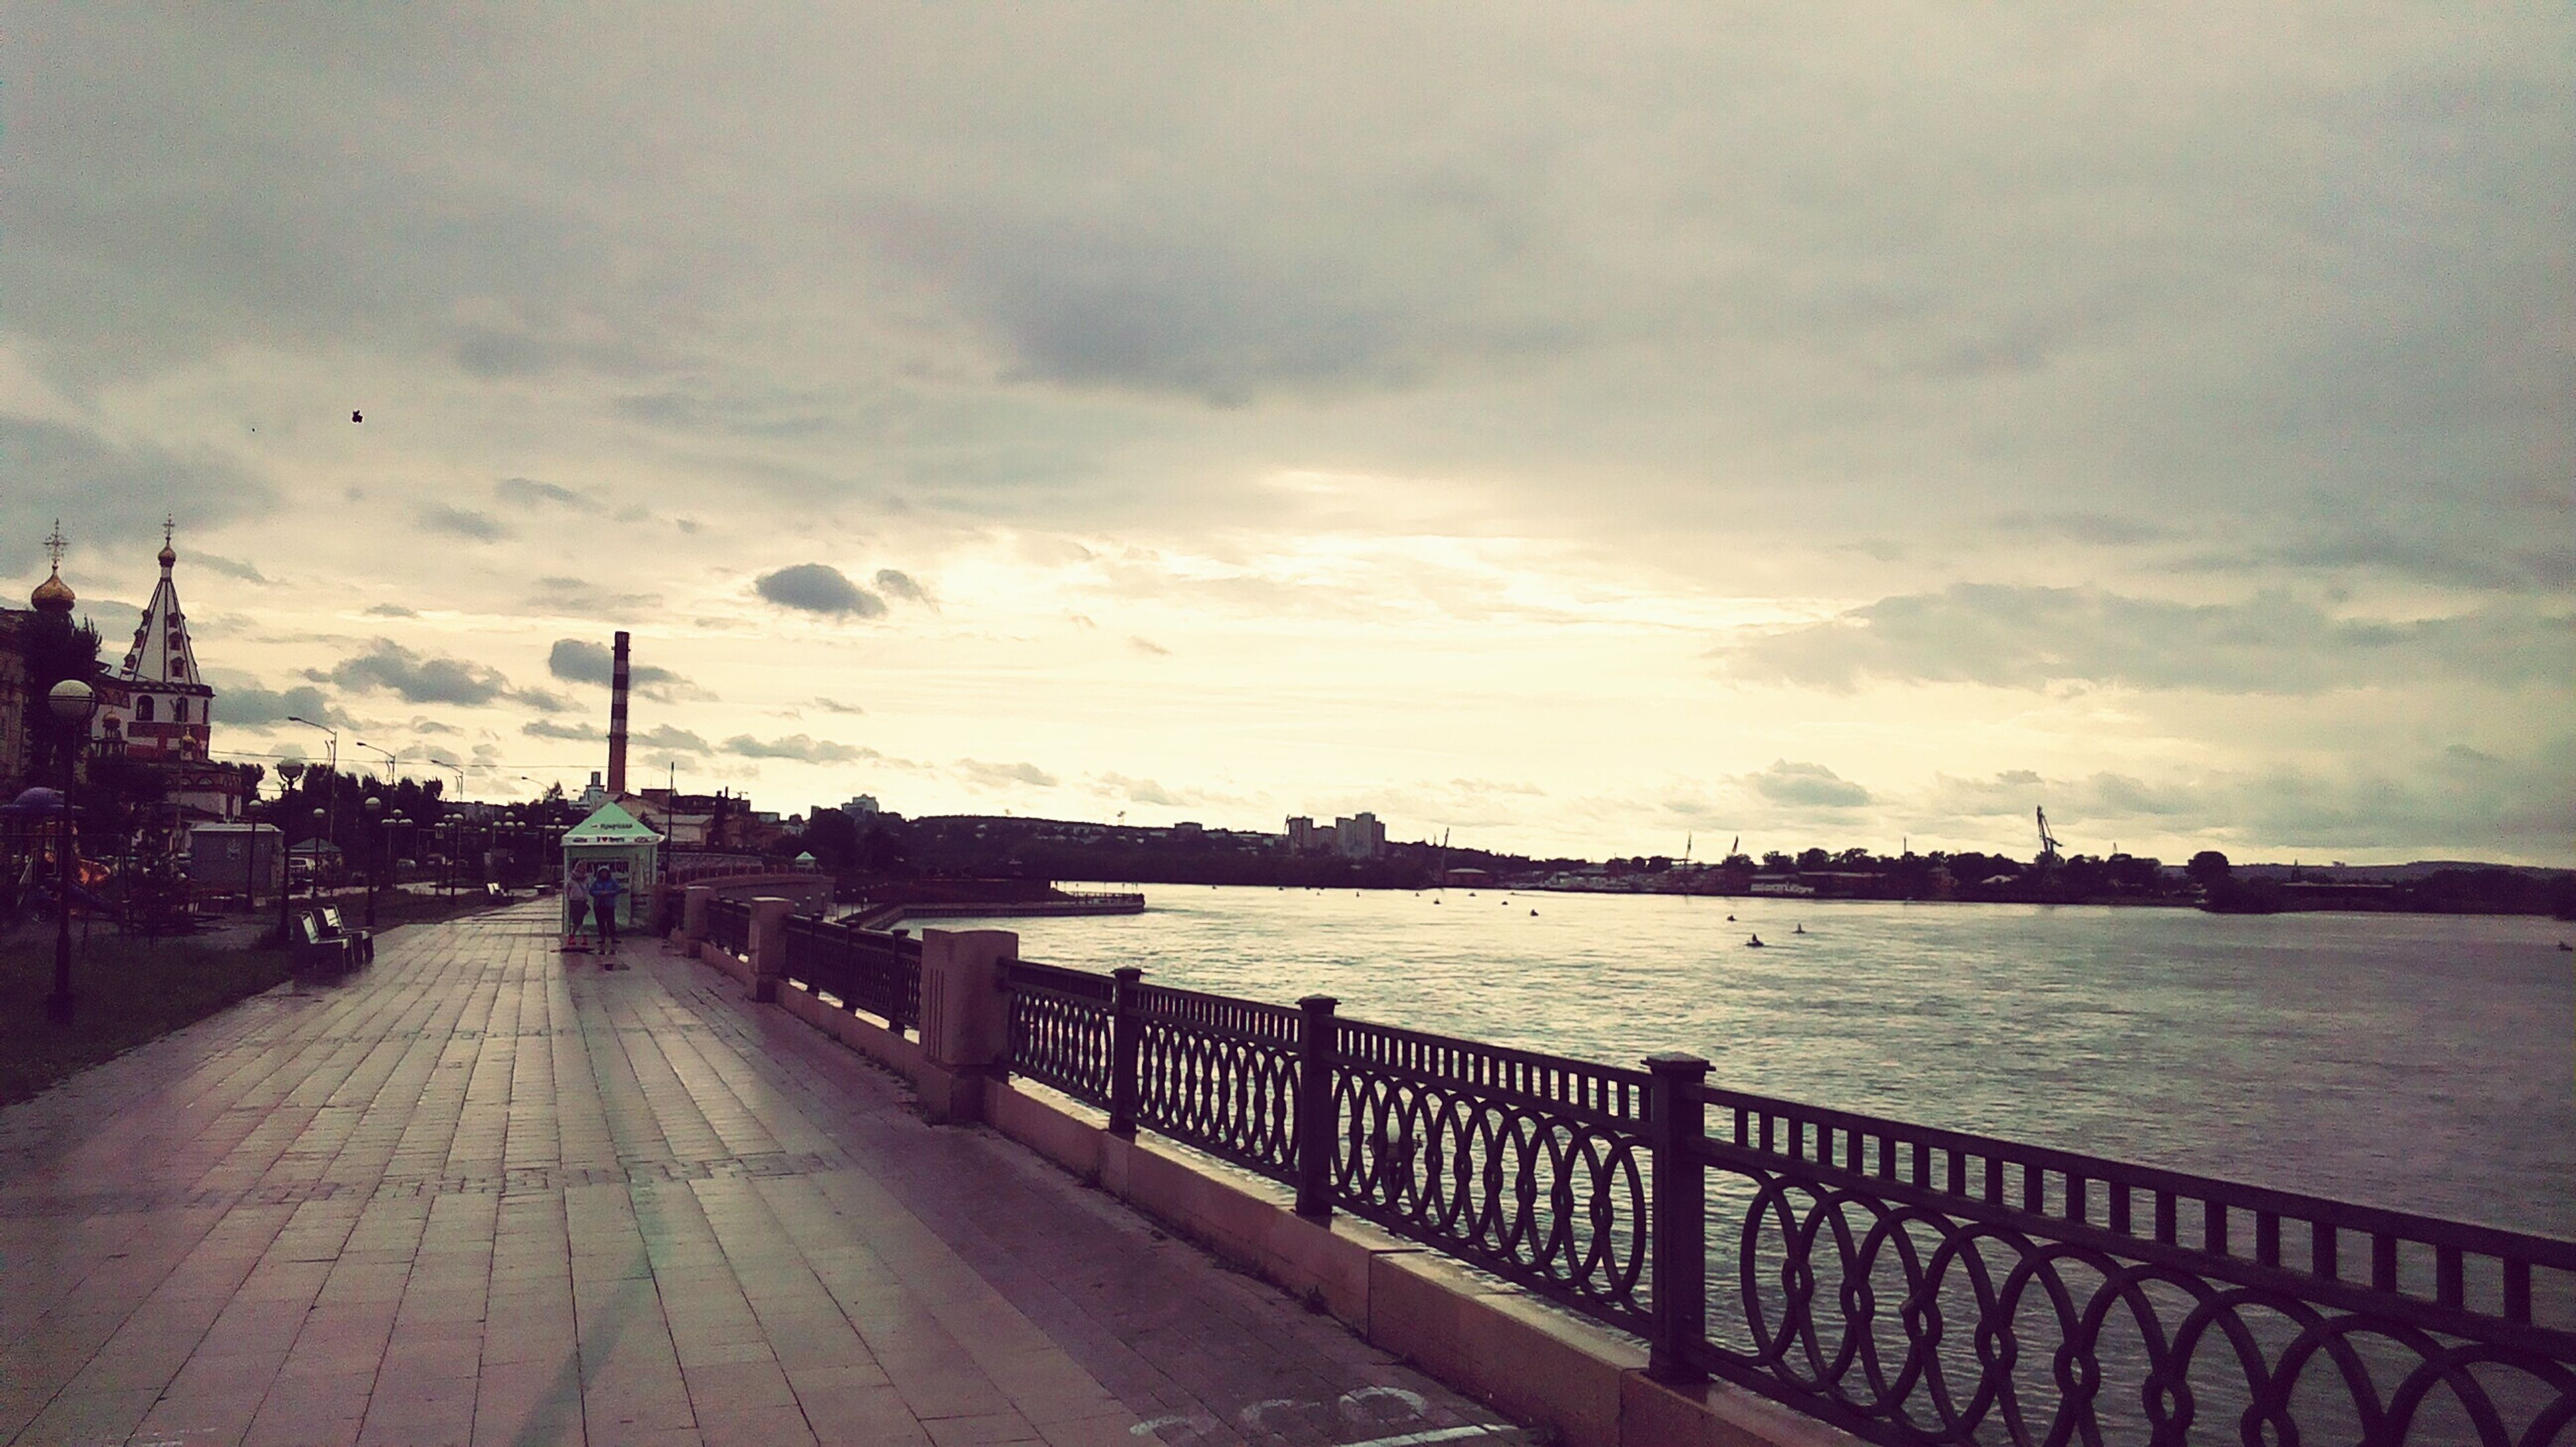 railing, water, street light, cloud, empty, road, sky, city, street, bench, the way forward, river, incidental people, pathway, promenade, lamp post, long, day, calm, diminishing perspective, walkway, cloud - sky, footpath, tranquility, city life, tranquil scene, sea, outdoors, cloudy, park bench